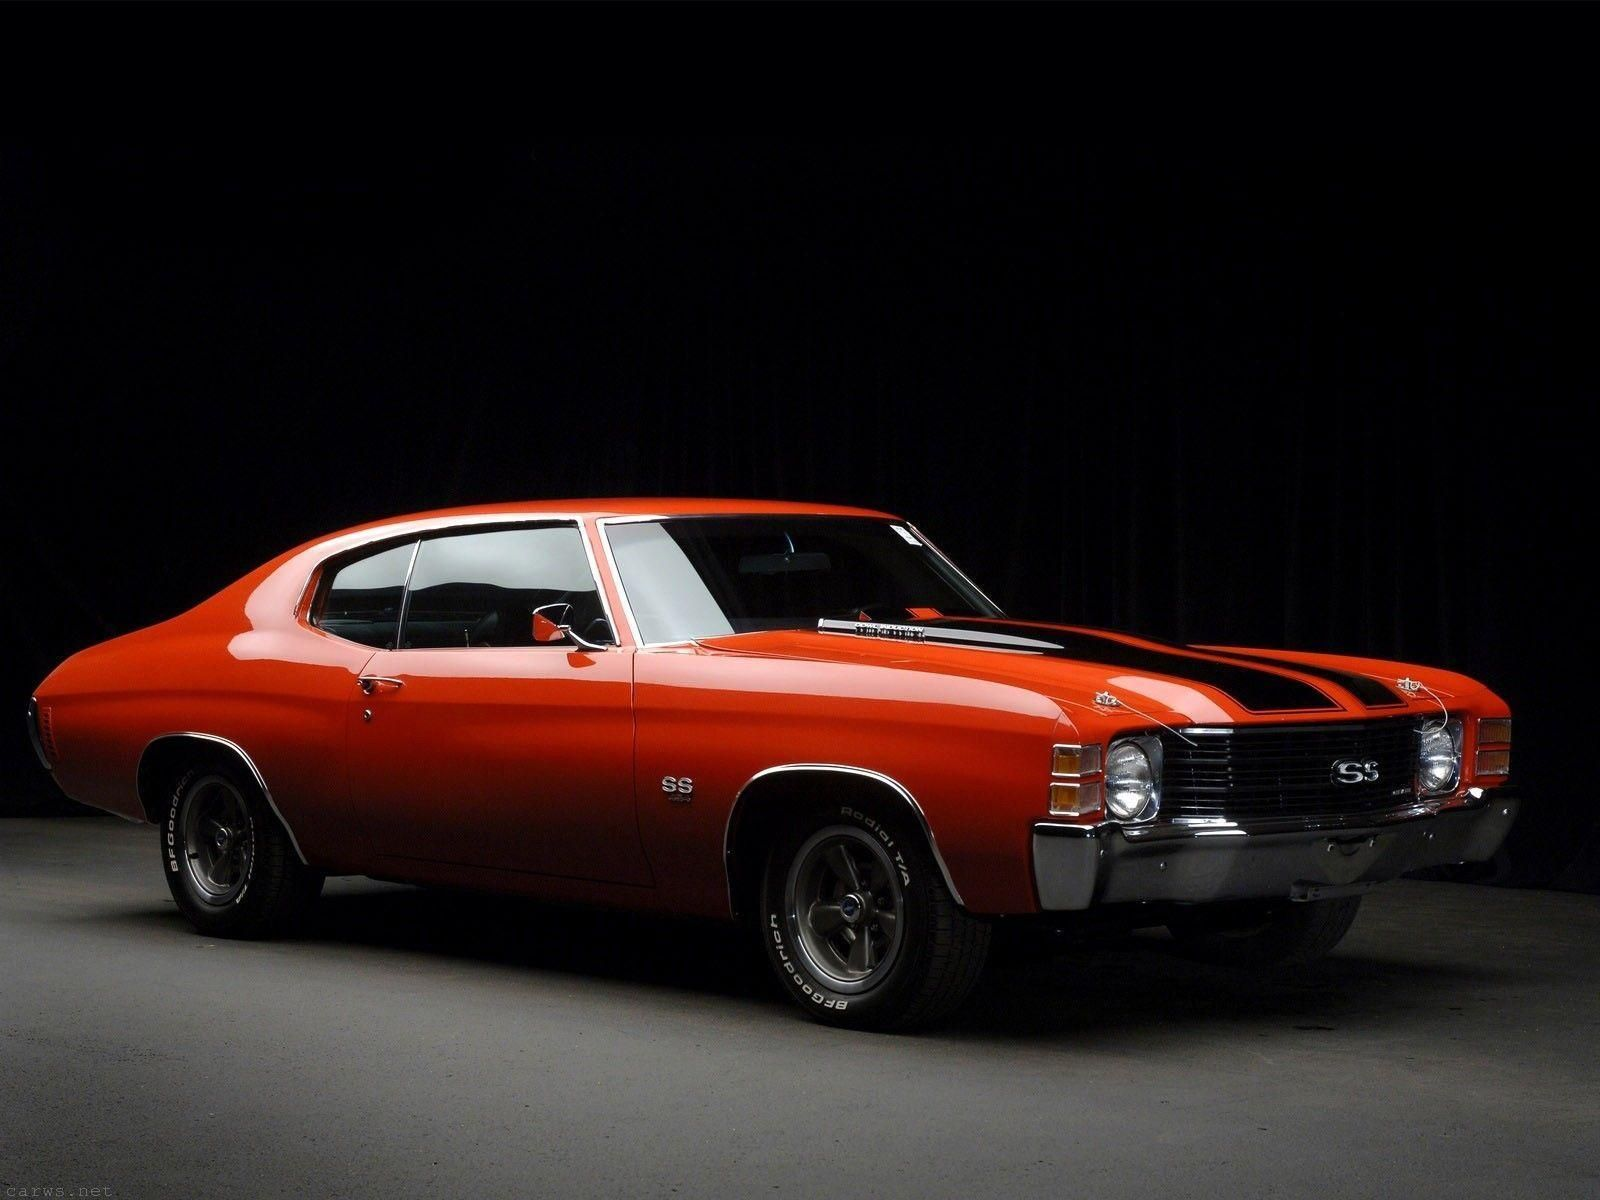 Cool Muscle Cars Backgrounds Free Desktop 8 Hd Wallpapers My